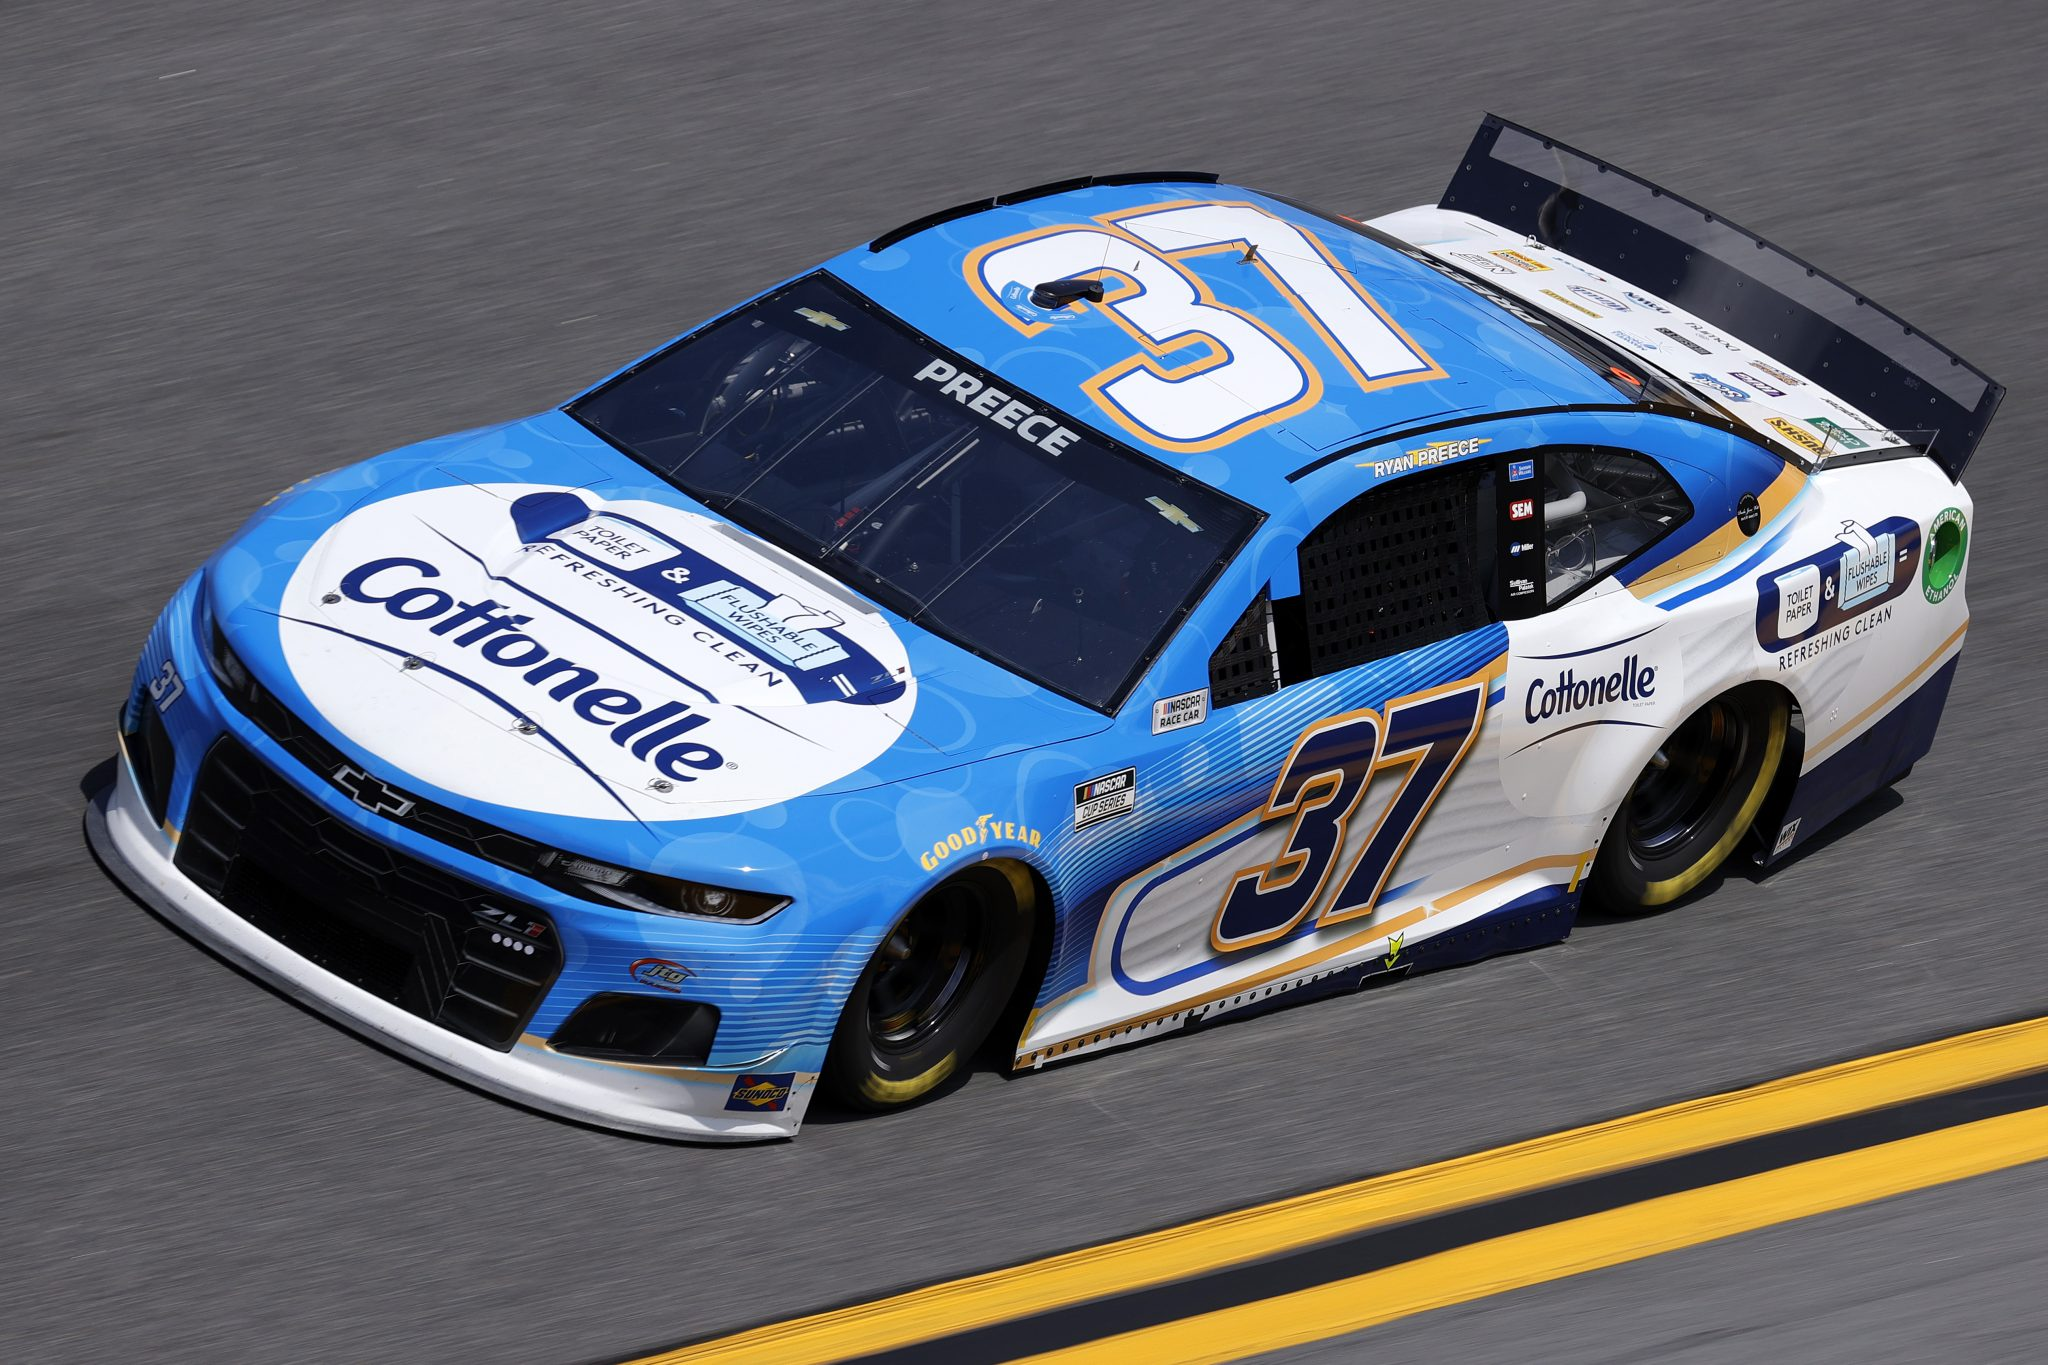 DAYTONA BEACH, FLORIDA - FEBRUARY 10: Ryan Preece, driver of the #37 Cottonelle Chevrolet, drives during practice for the NASCAR Cup Series 63rd Annual Daytona 500 at Daytona International Speedway on February 10, 2021 in Daytona Beach, Florida. (Photo by Jared C. Tilton/Getty Images) | Getty Images